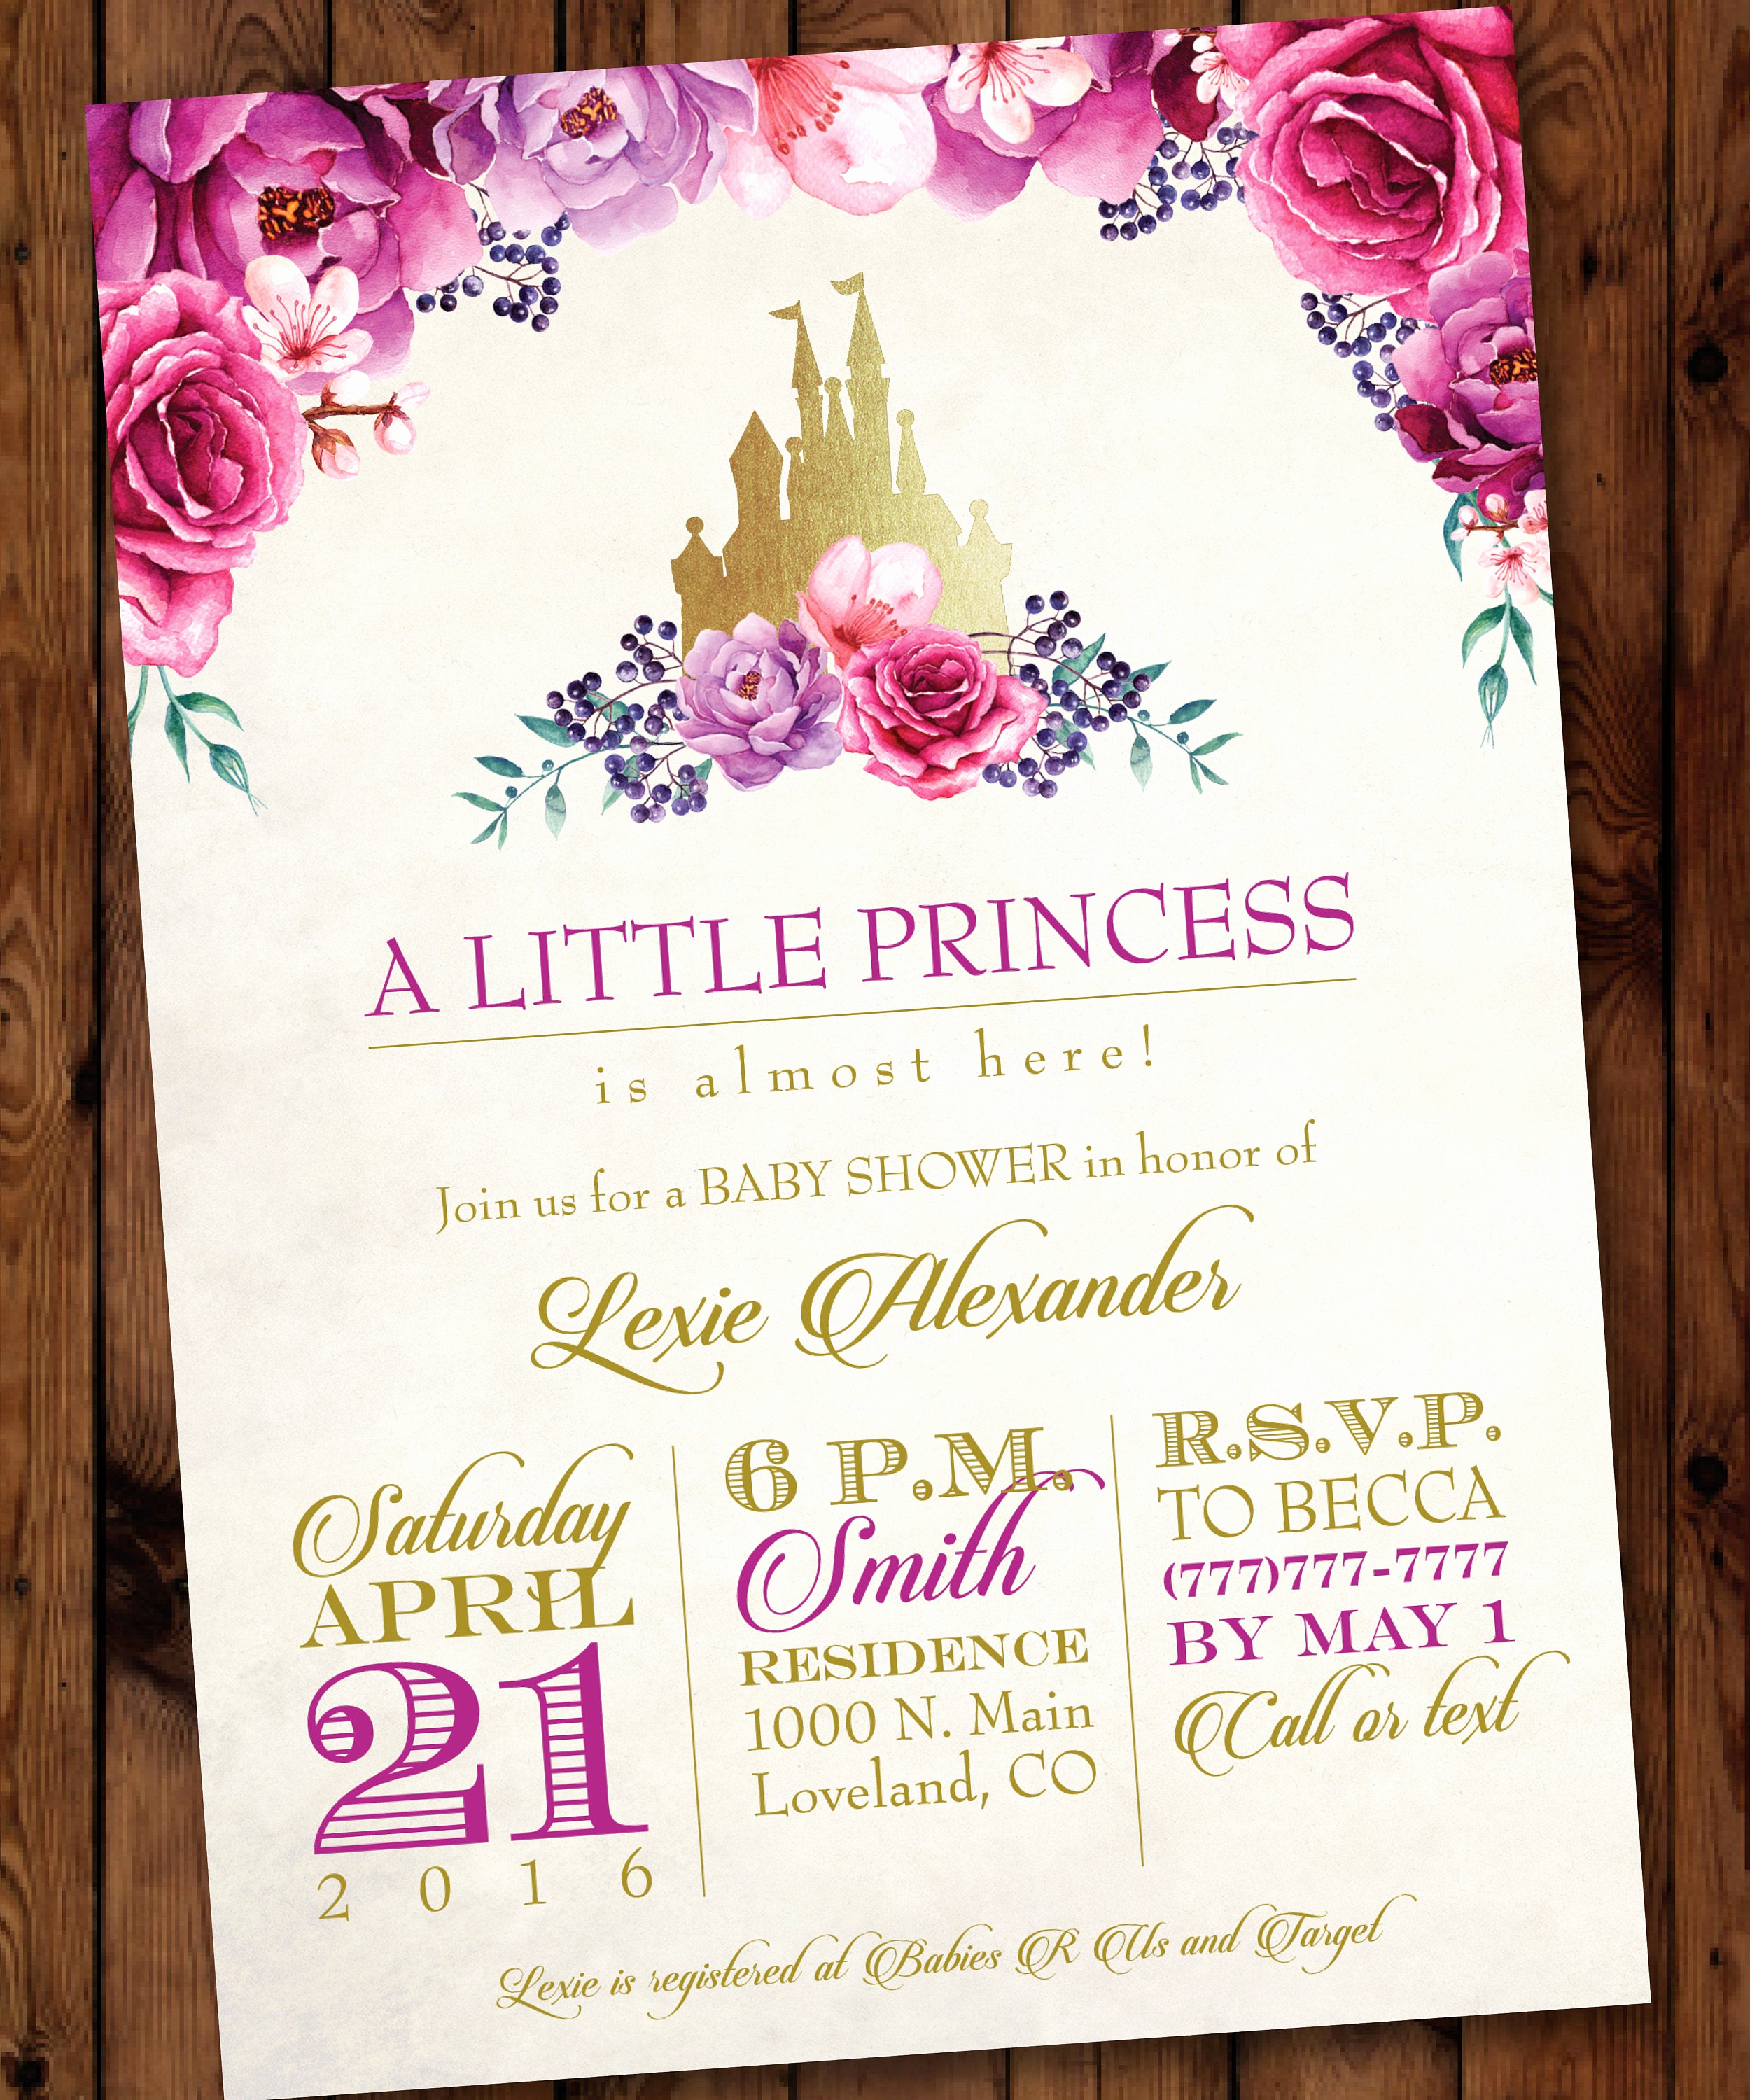 Princess Baby Shower Invitation Luxury Princess Baby Shower Invitation Little Princess